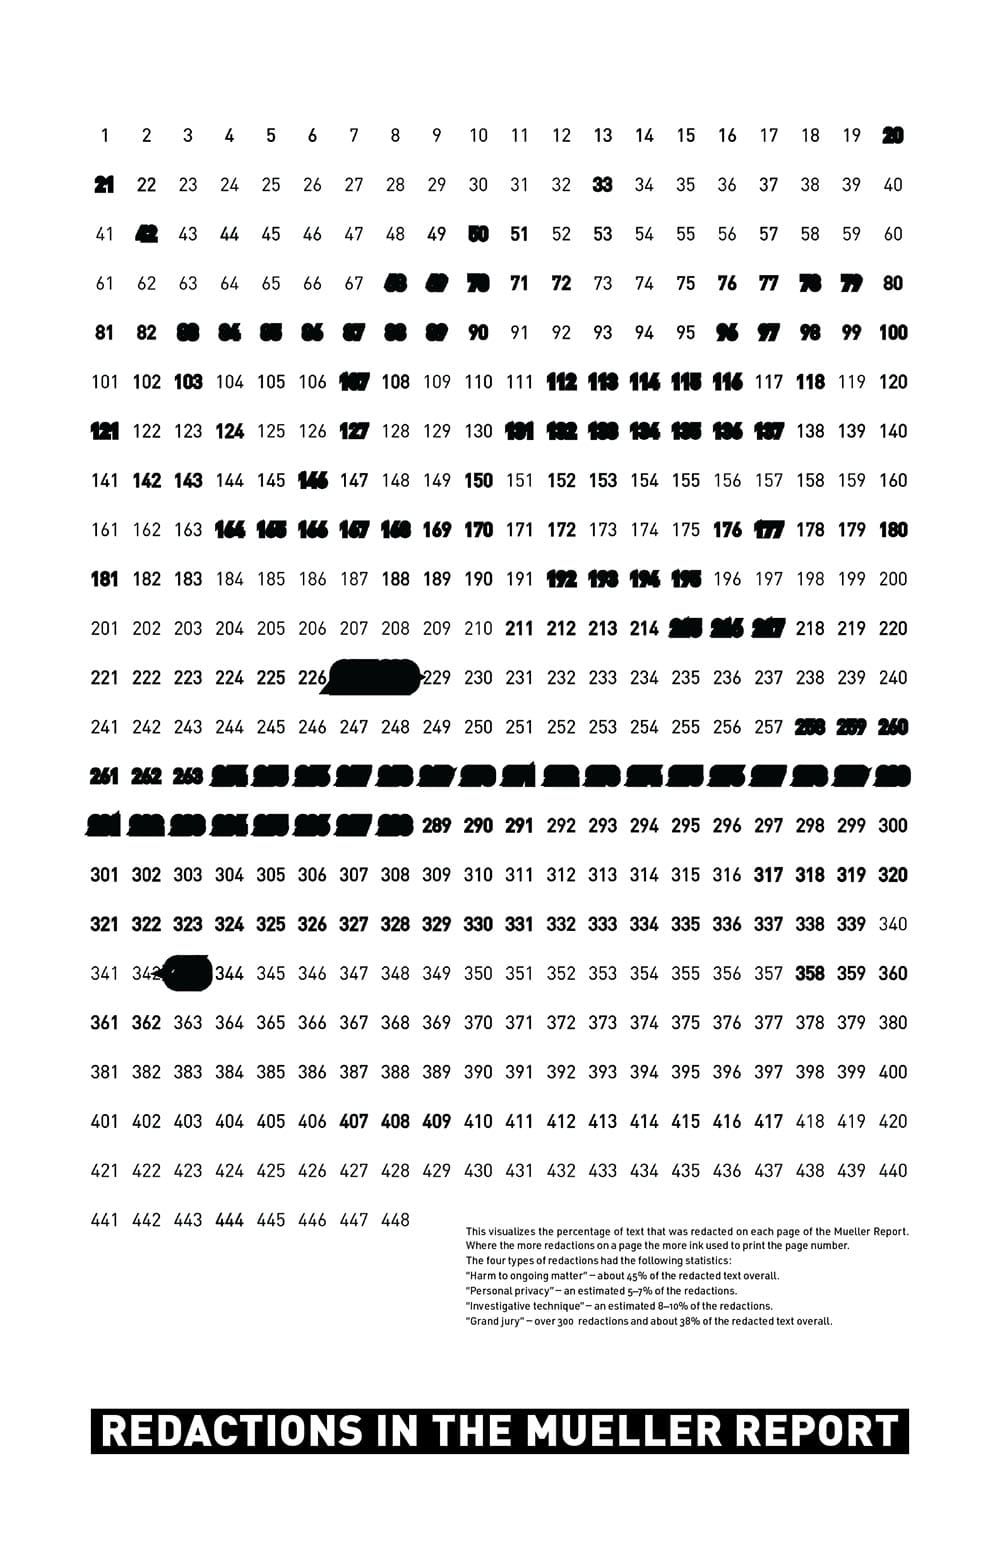 Visualizing the Mueller Report